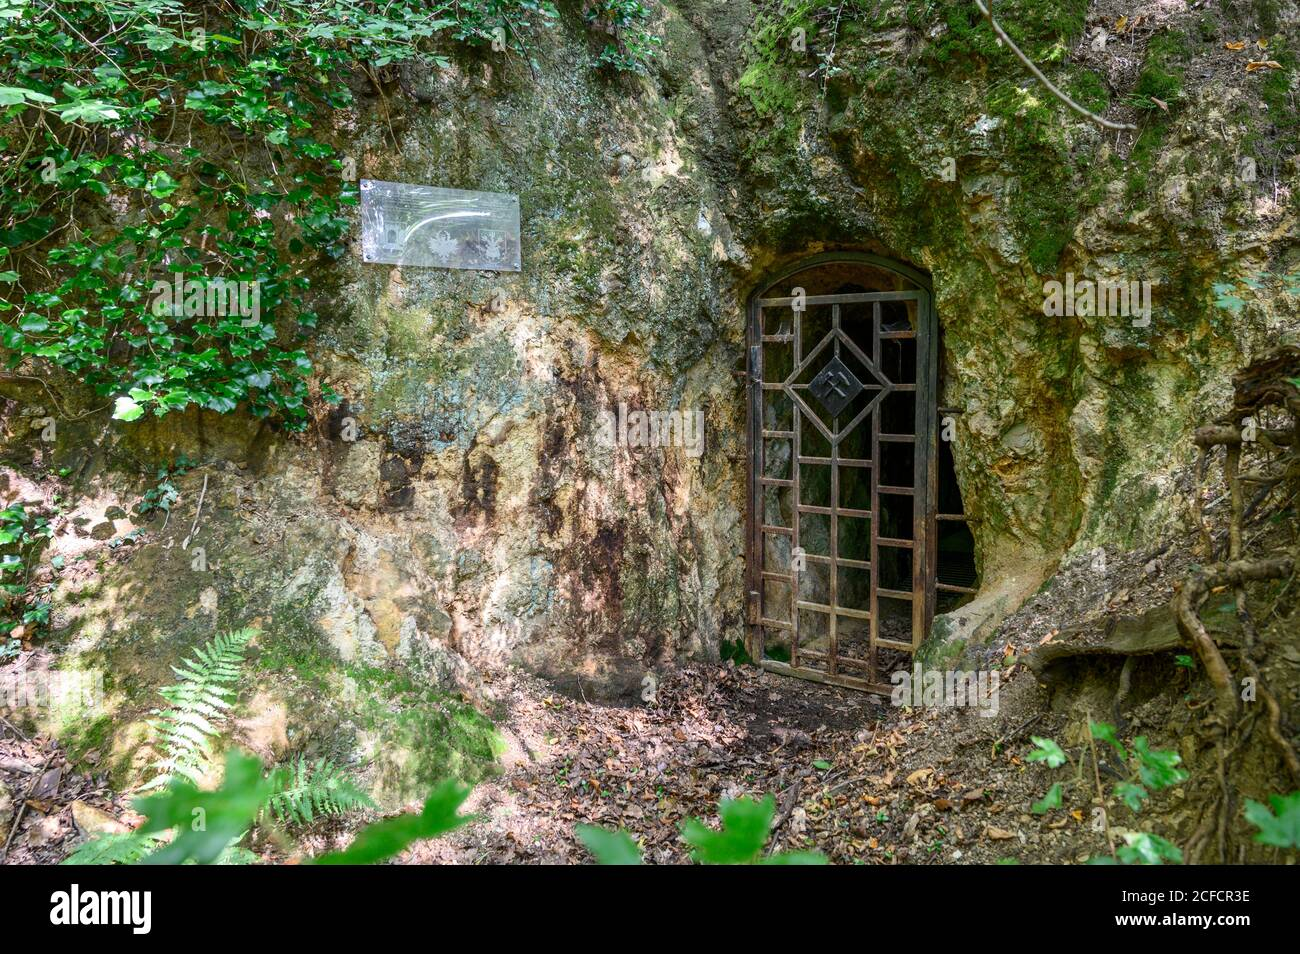 Italy, Trentino-South Tyrol, South Tyrol, Alto Adige, Etschtal, Terlan / Terlano, lead, silver, mining, Terlan silver mine, tunnels, gap in porphyry Stock Photo